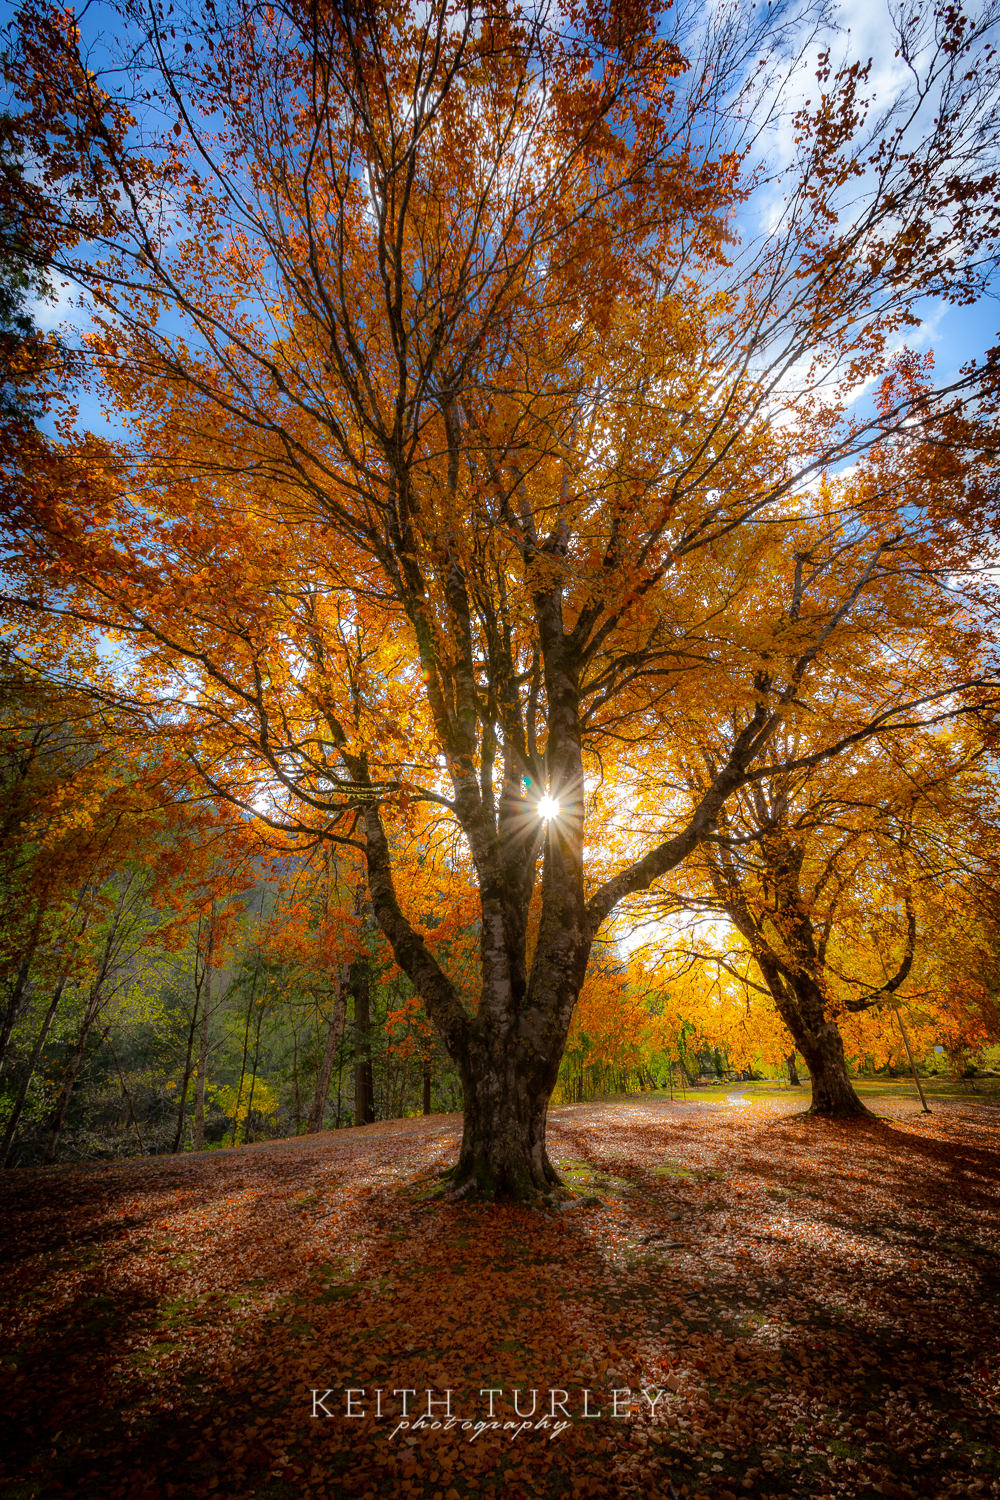 Tree Star by Keith Turley